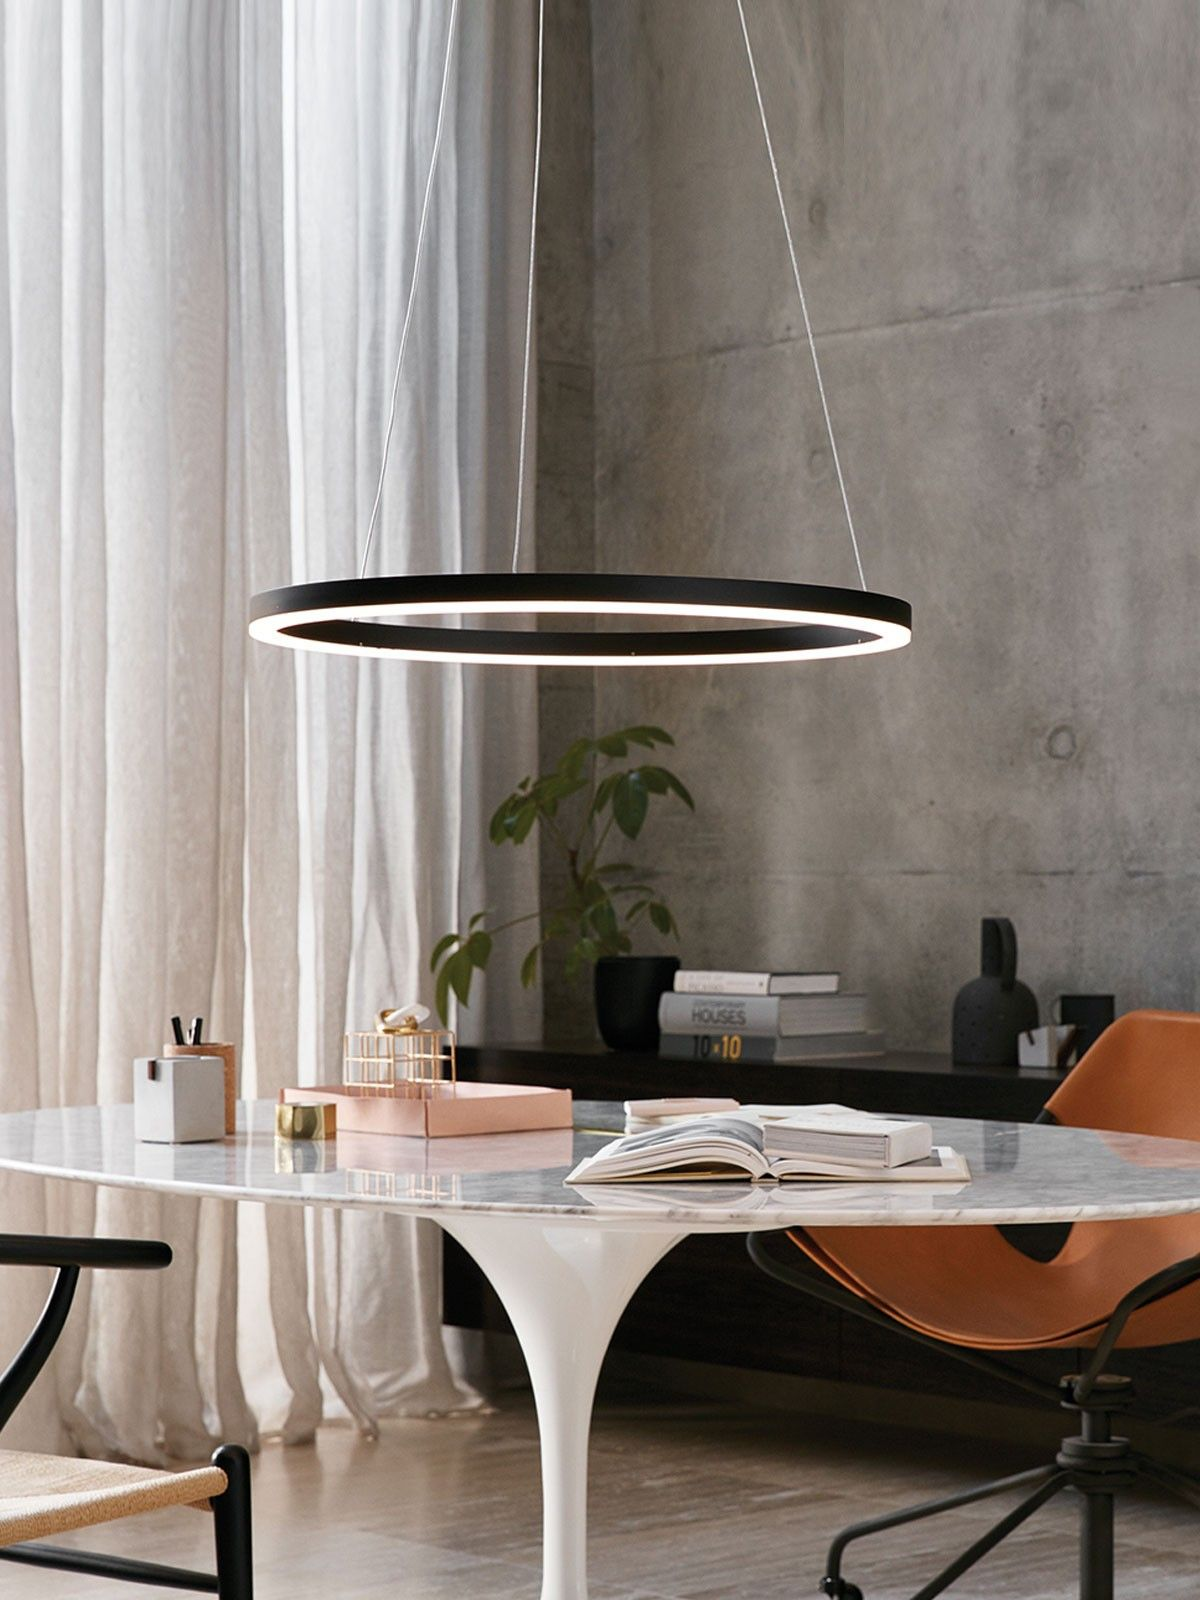 Ledlux circa ring 1600 lumen dimmable pendant in black abode luminaire lumiere salle manger for Lumiere salle a manger